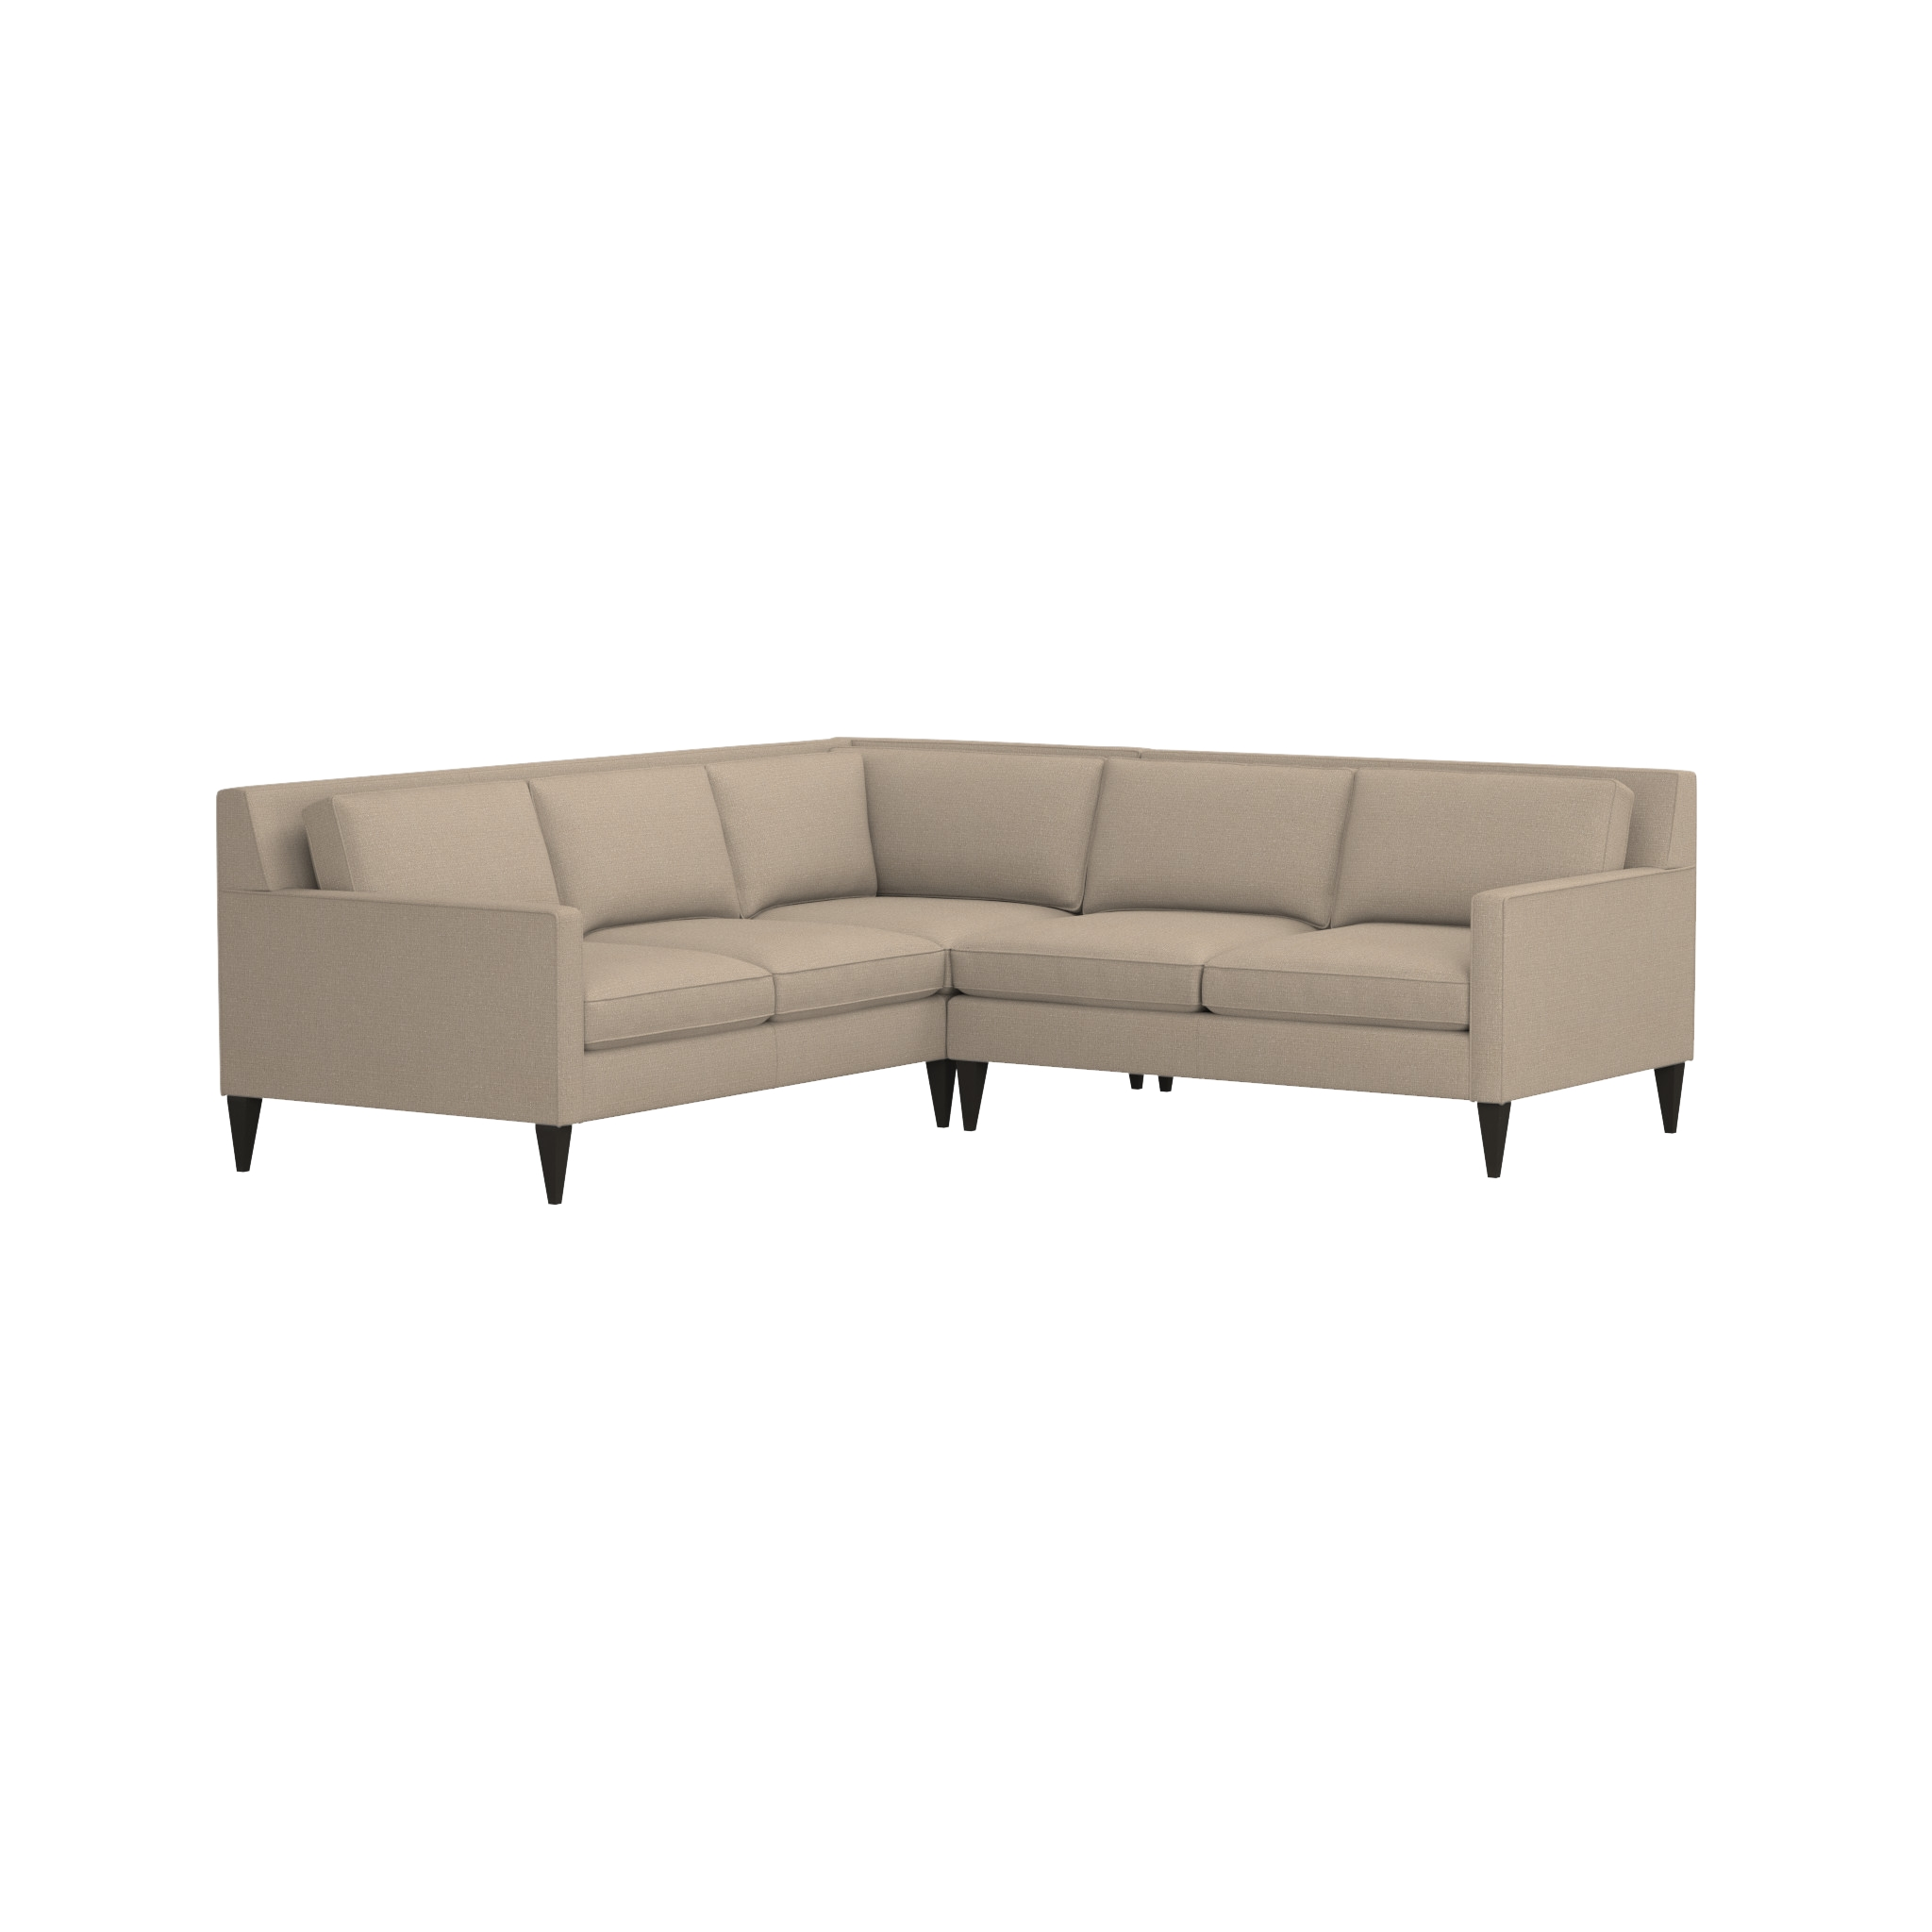 Rochelle 2 Piece Sectional Sofa | Crate And Barrel For Sectional Crate And Barrel (View 14 of 20)